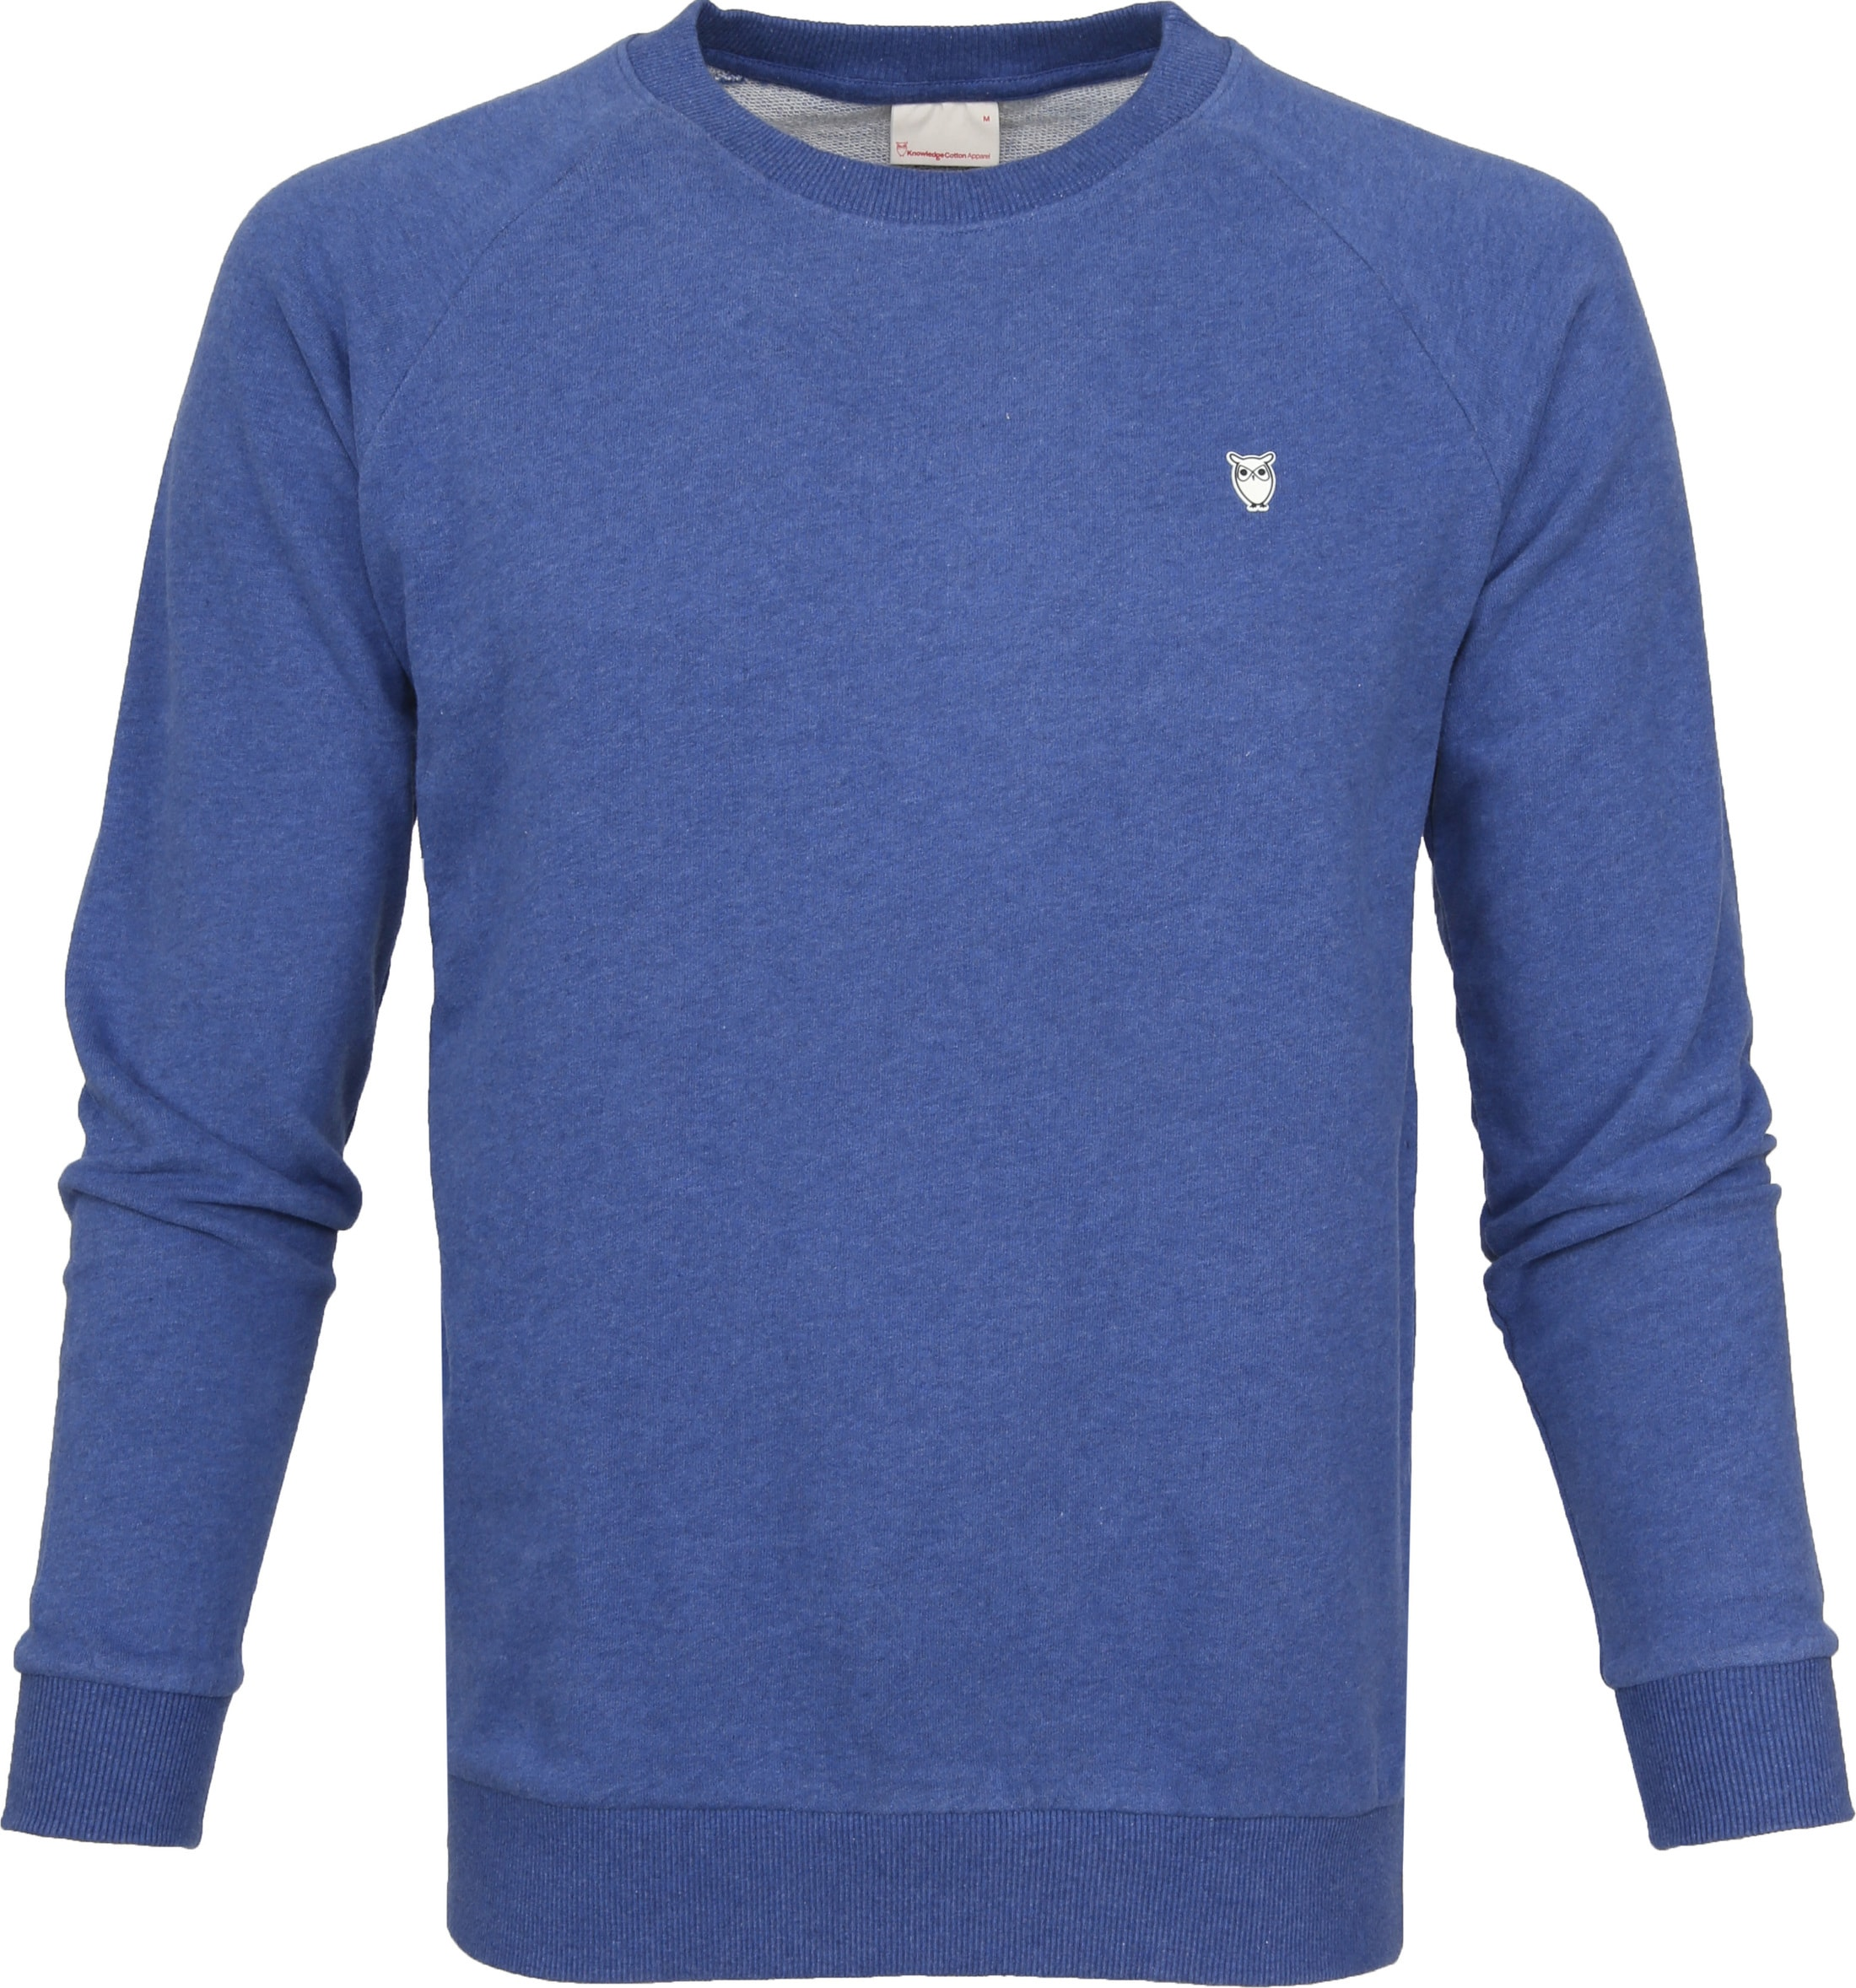 Knowledge Cotton Apparel Pullover Blau 30395 1231 Blue